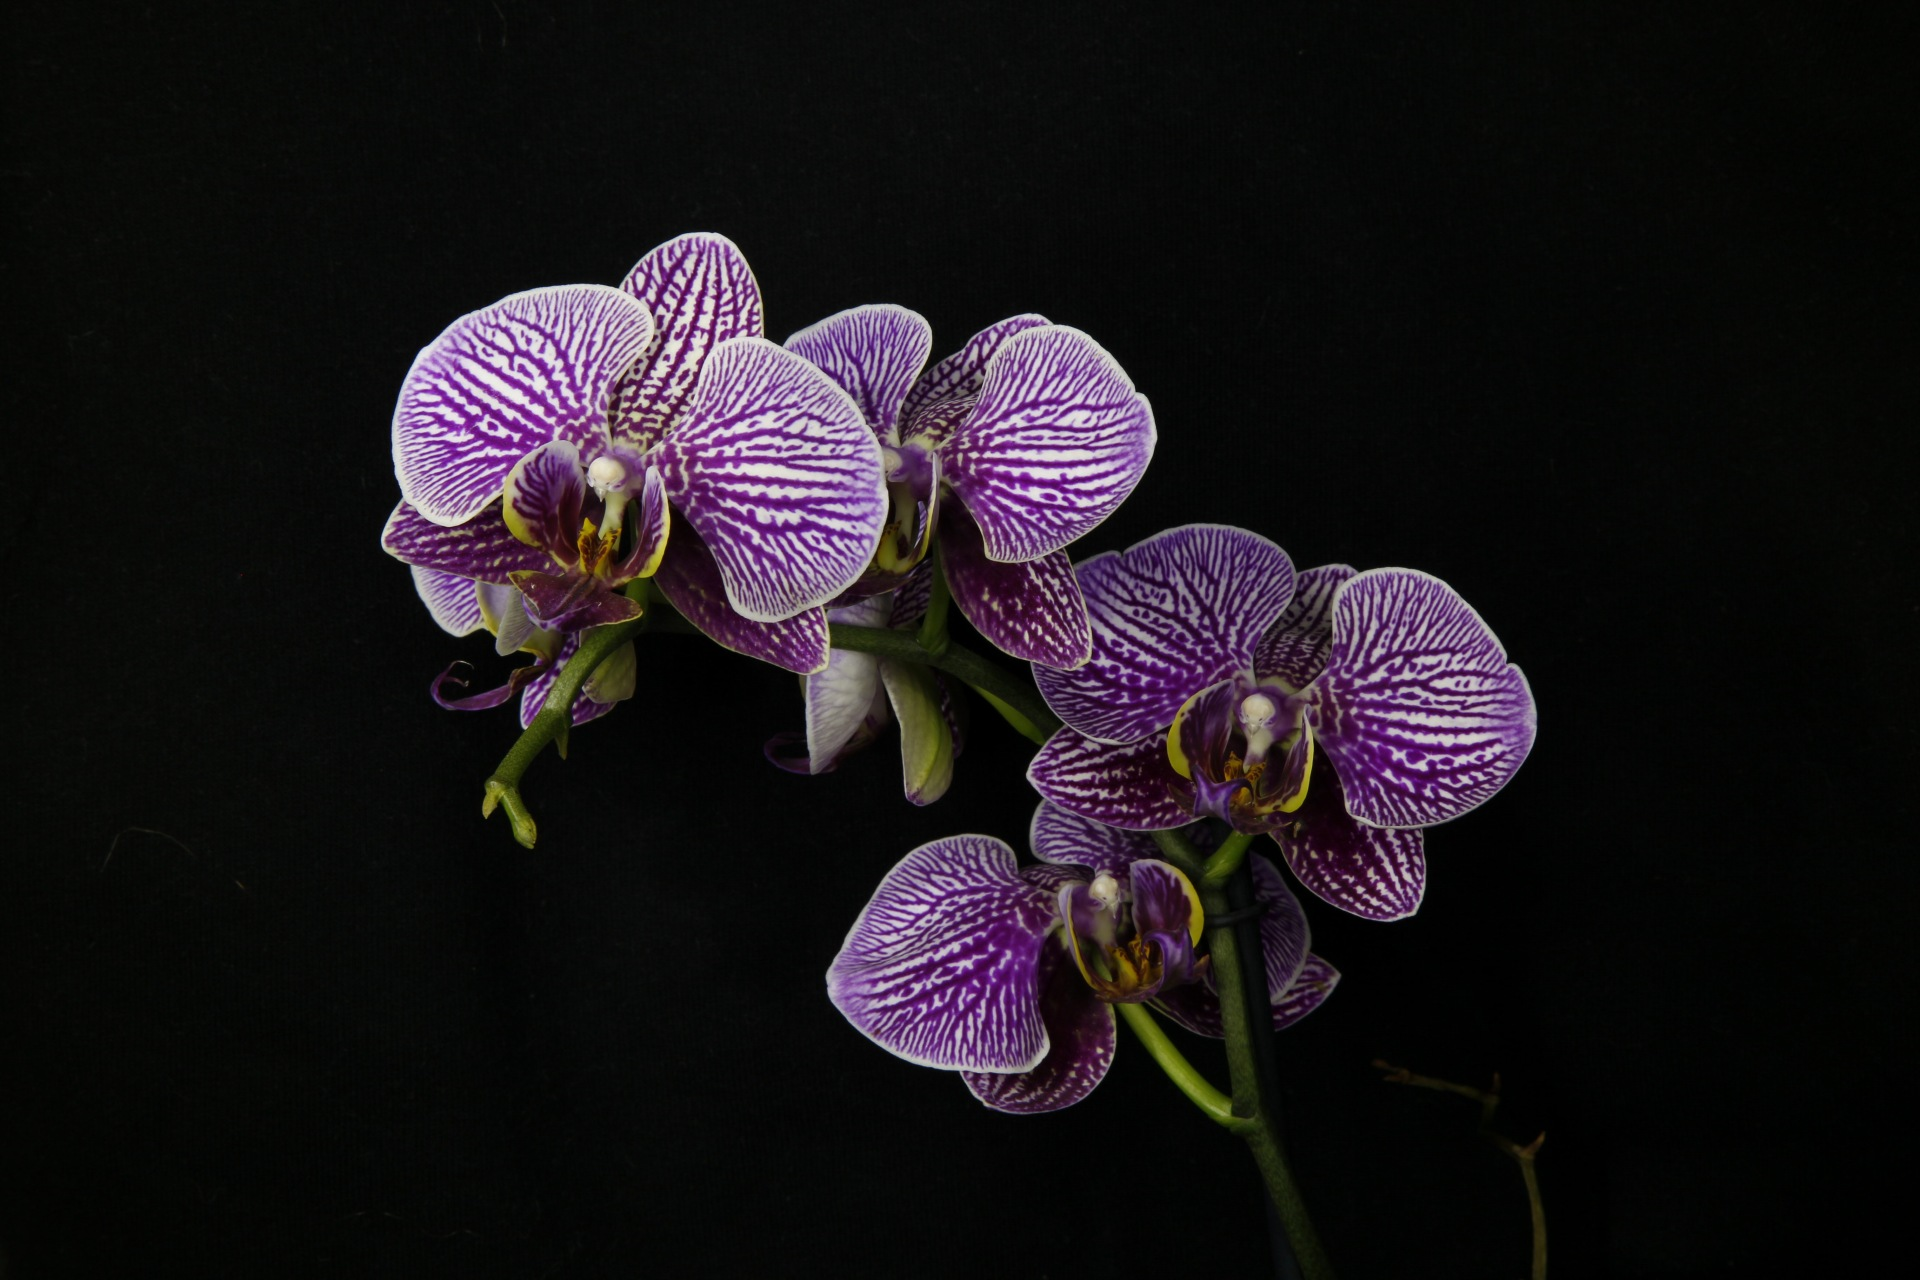 The wife of orchids...